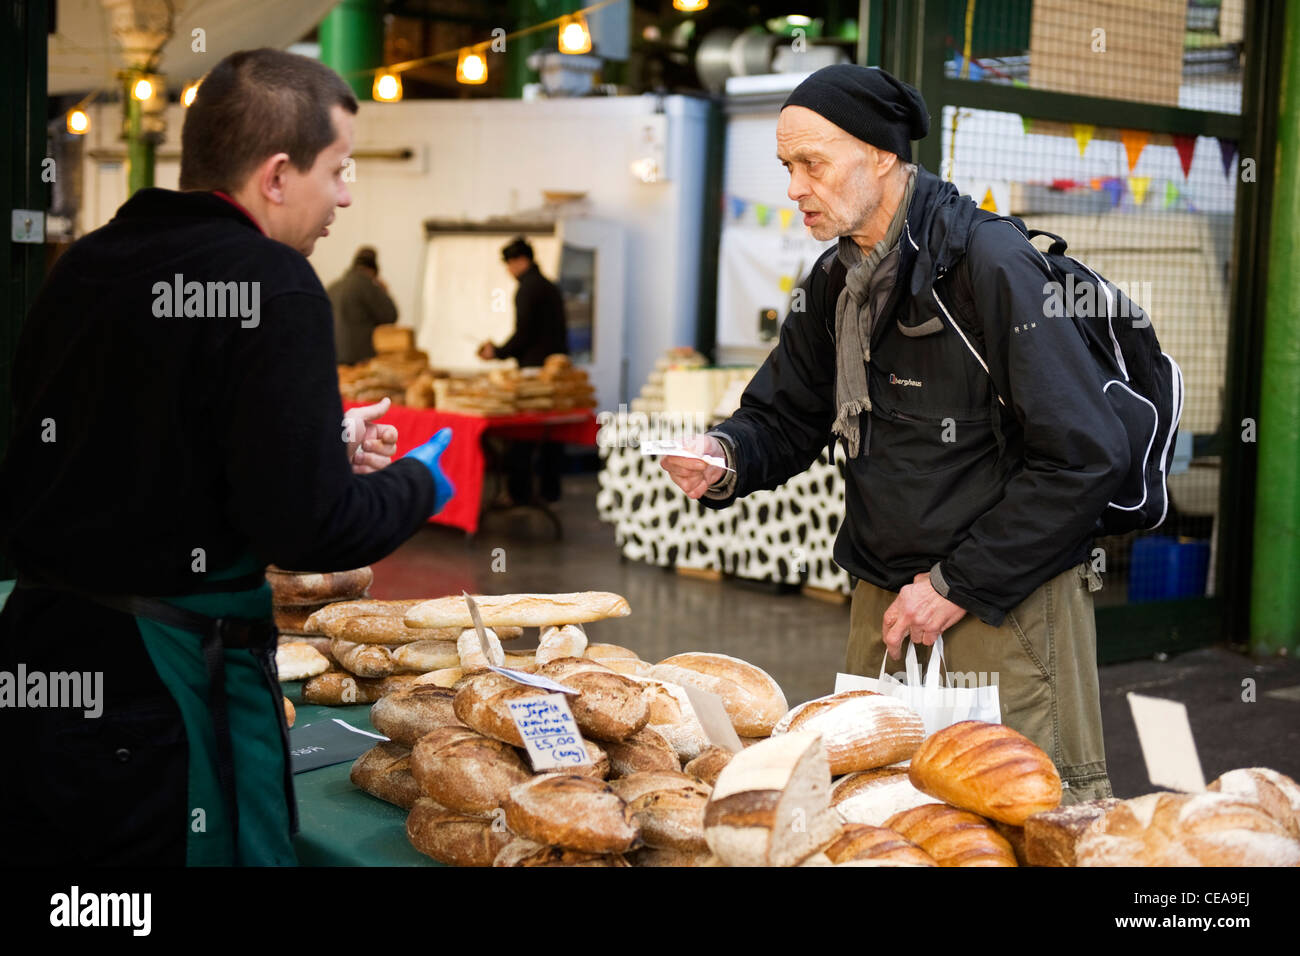 Borough Market London eccentric skinny old man male in woolly hat scarf & rucksack buying freshly baked bread - Stock Image